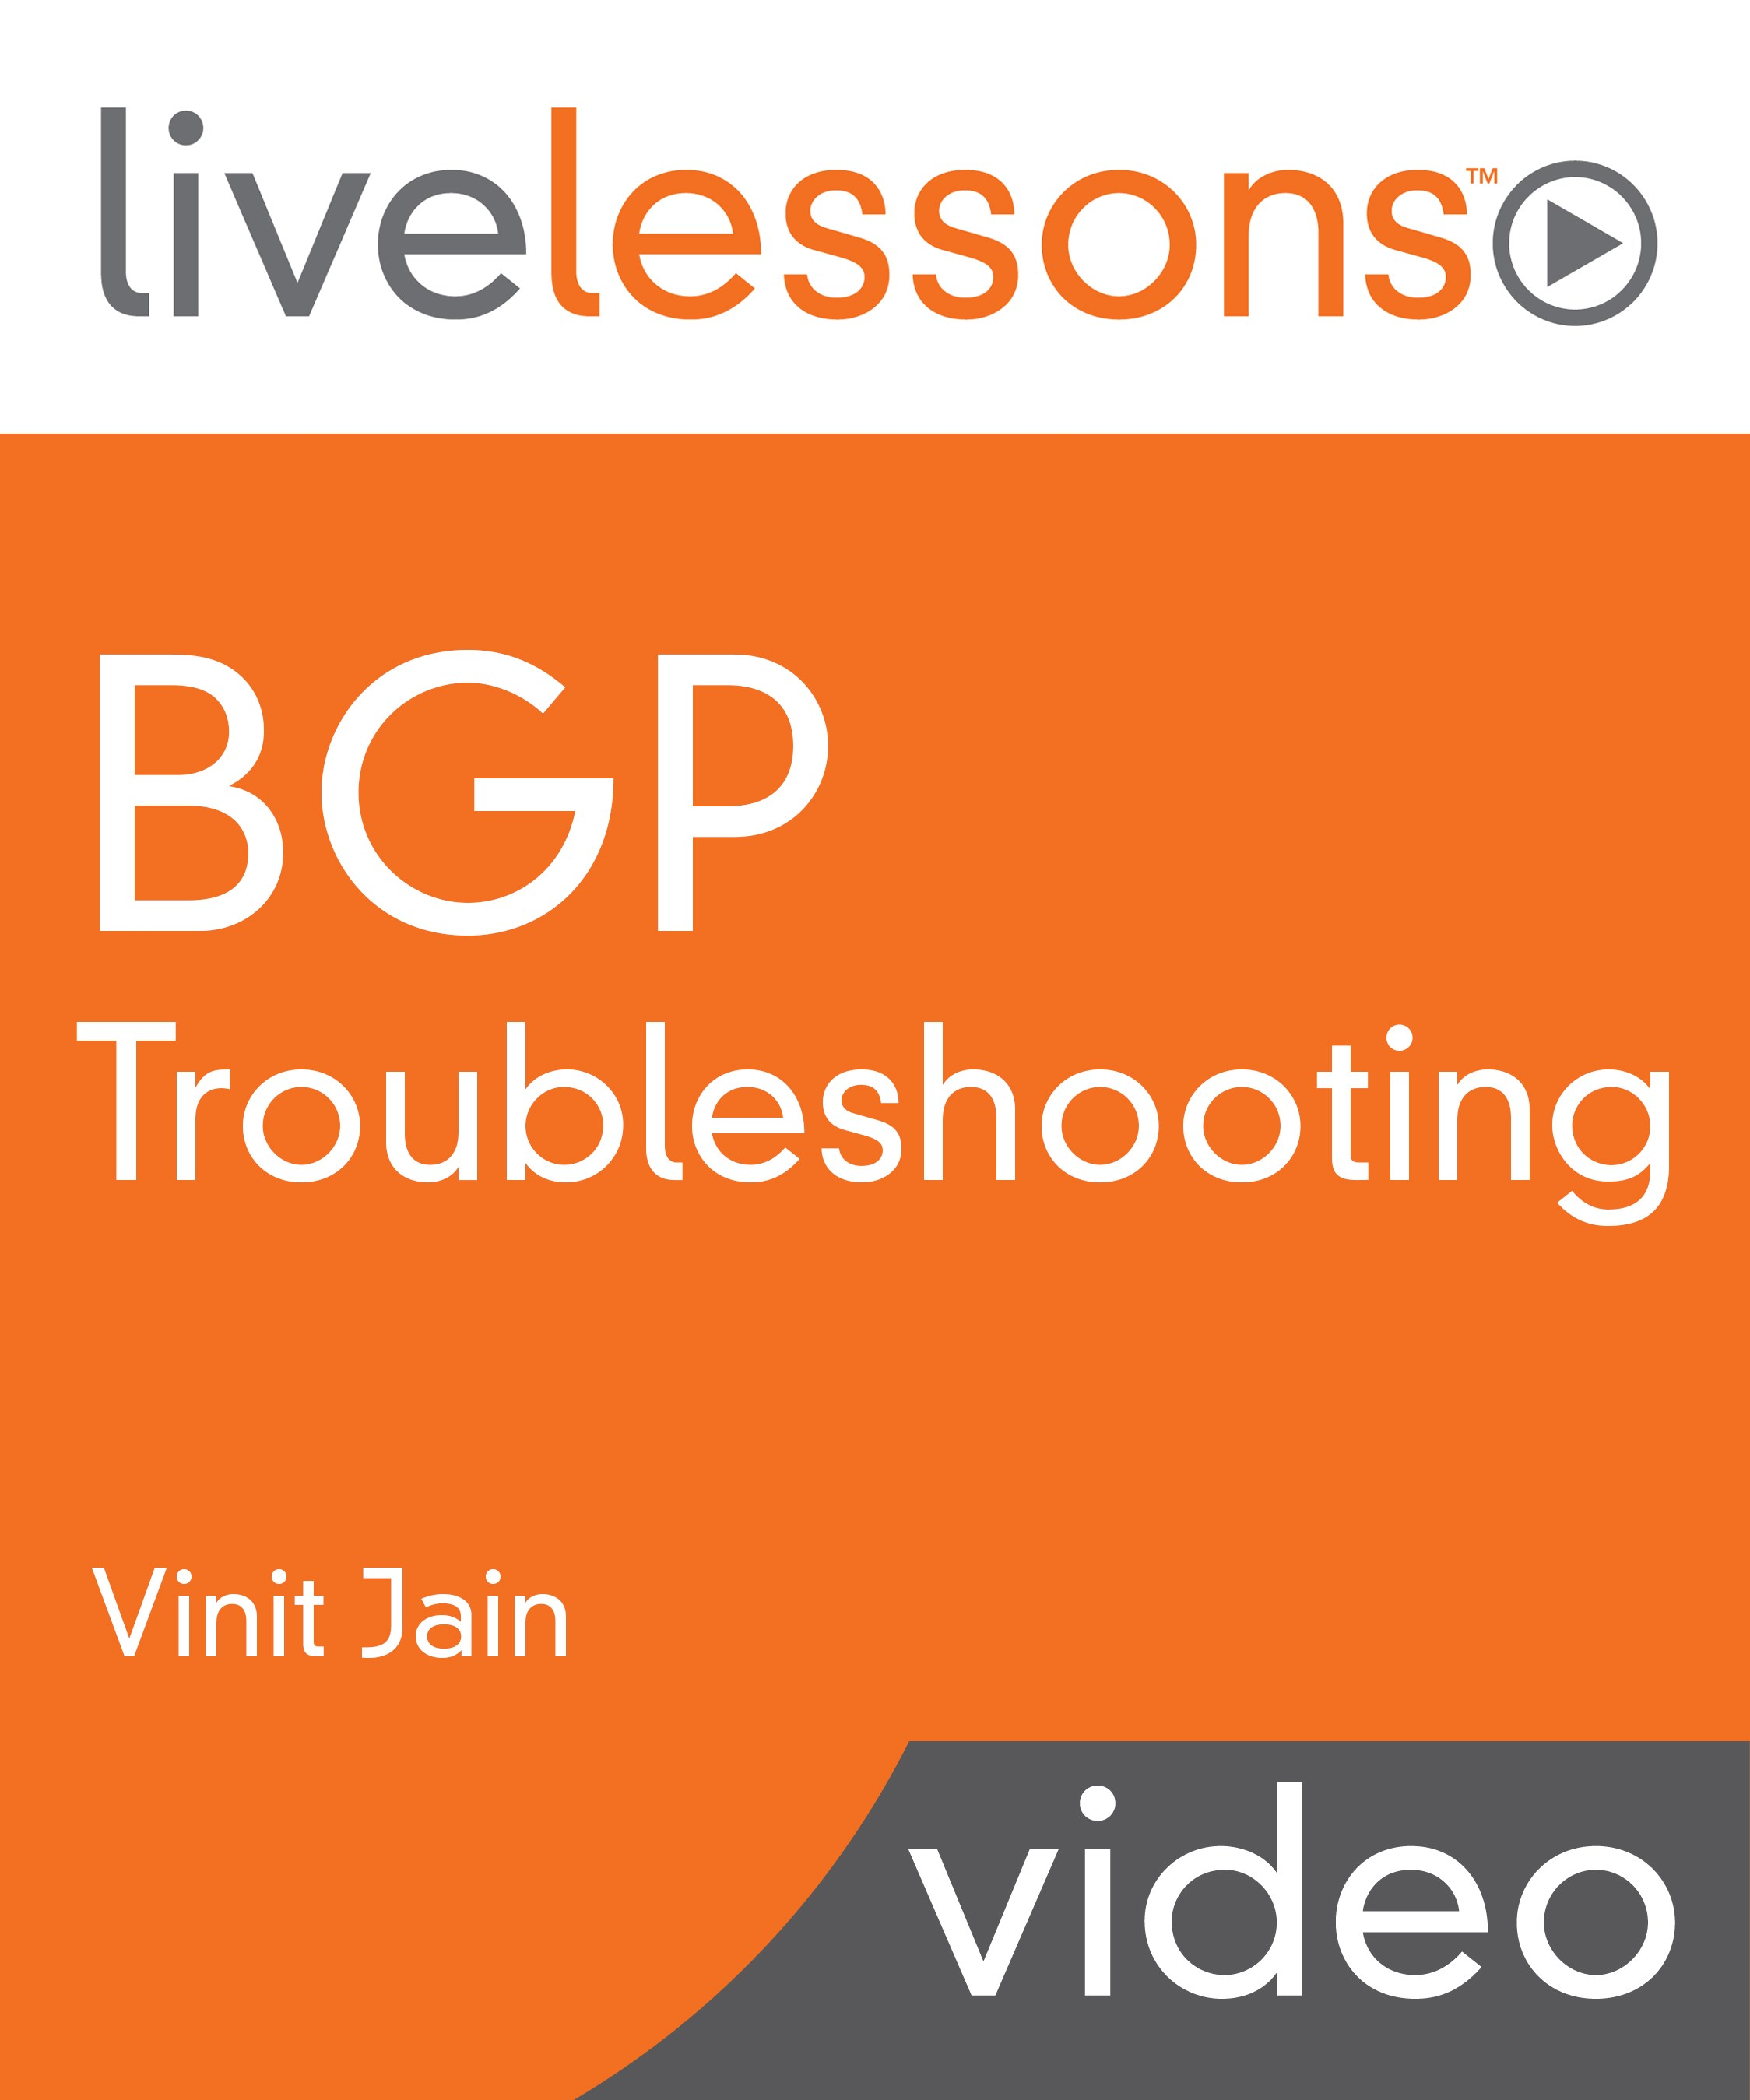 BGP Troubleshooting LiveLessons